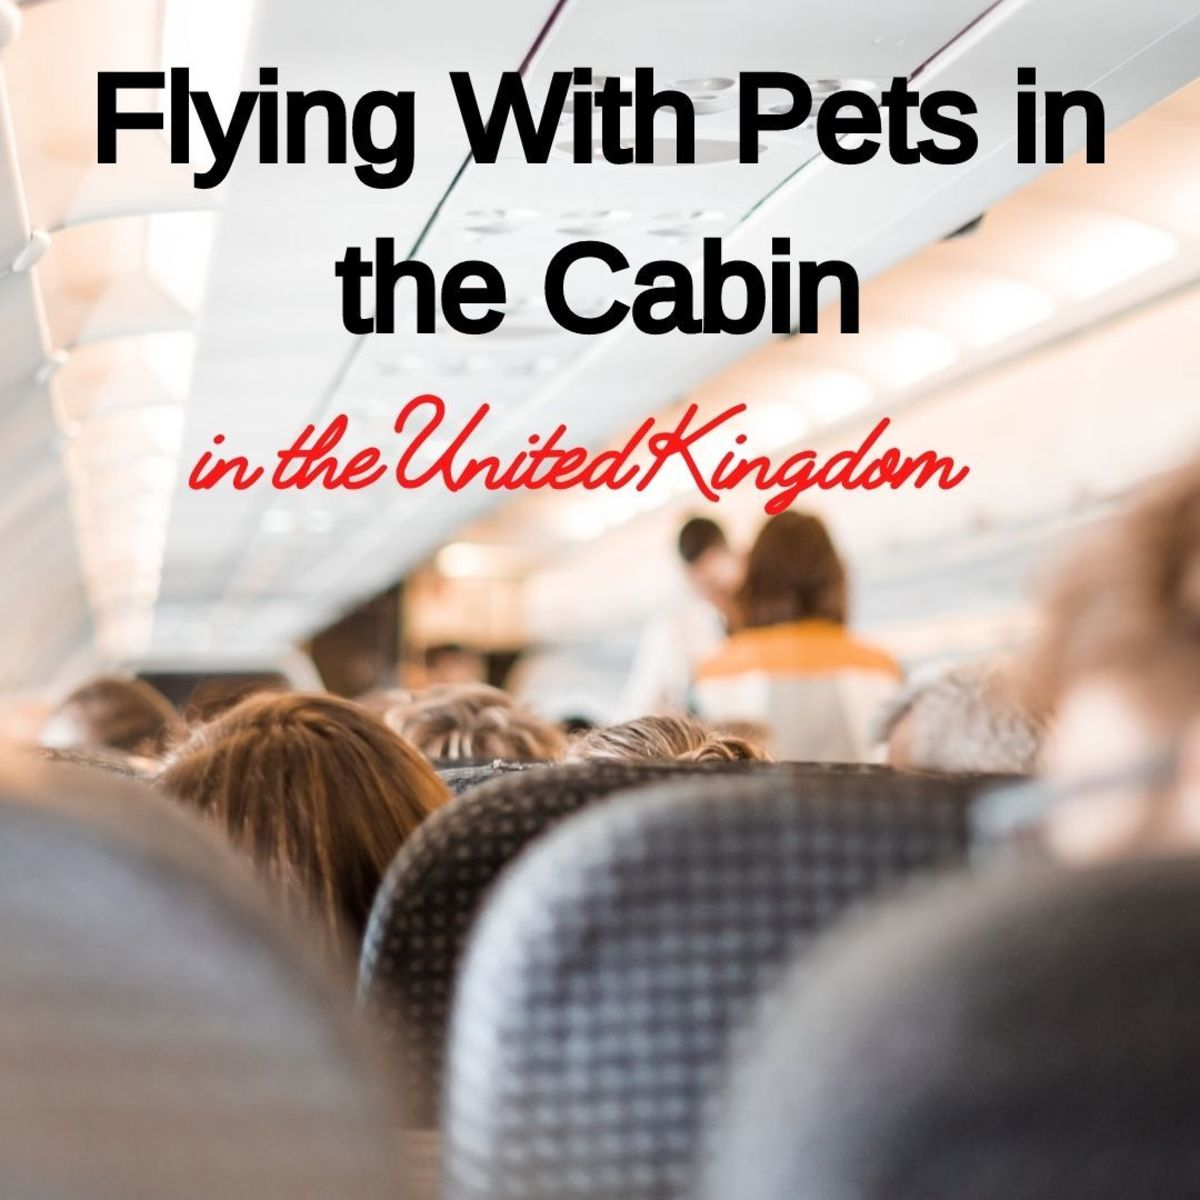 Flying With Pets in the Cabin to the United Kingdom